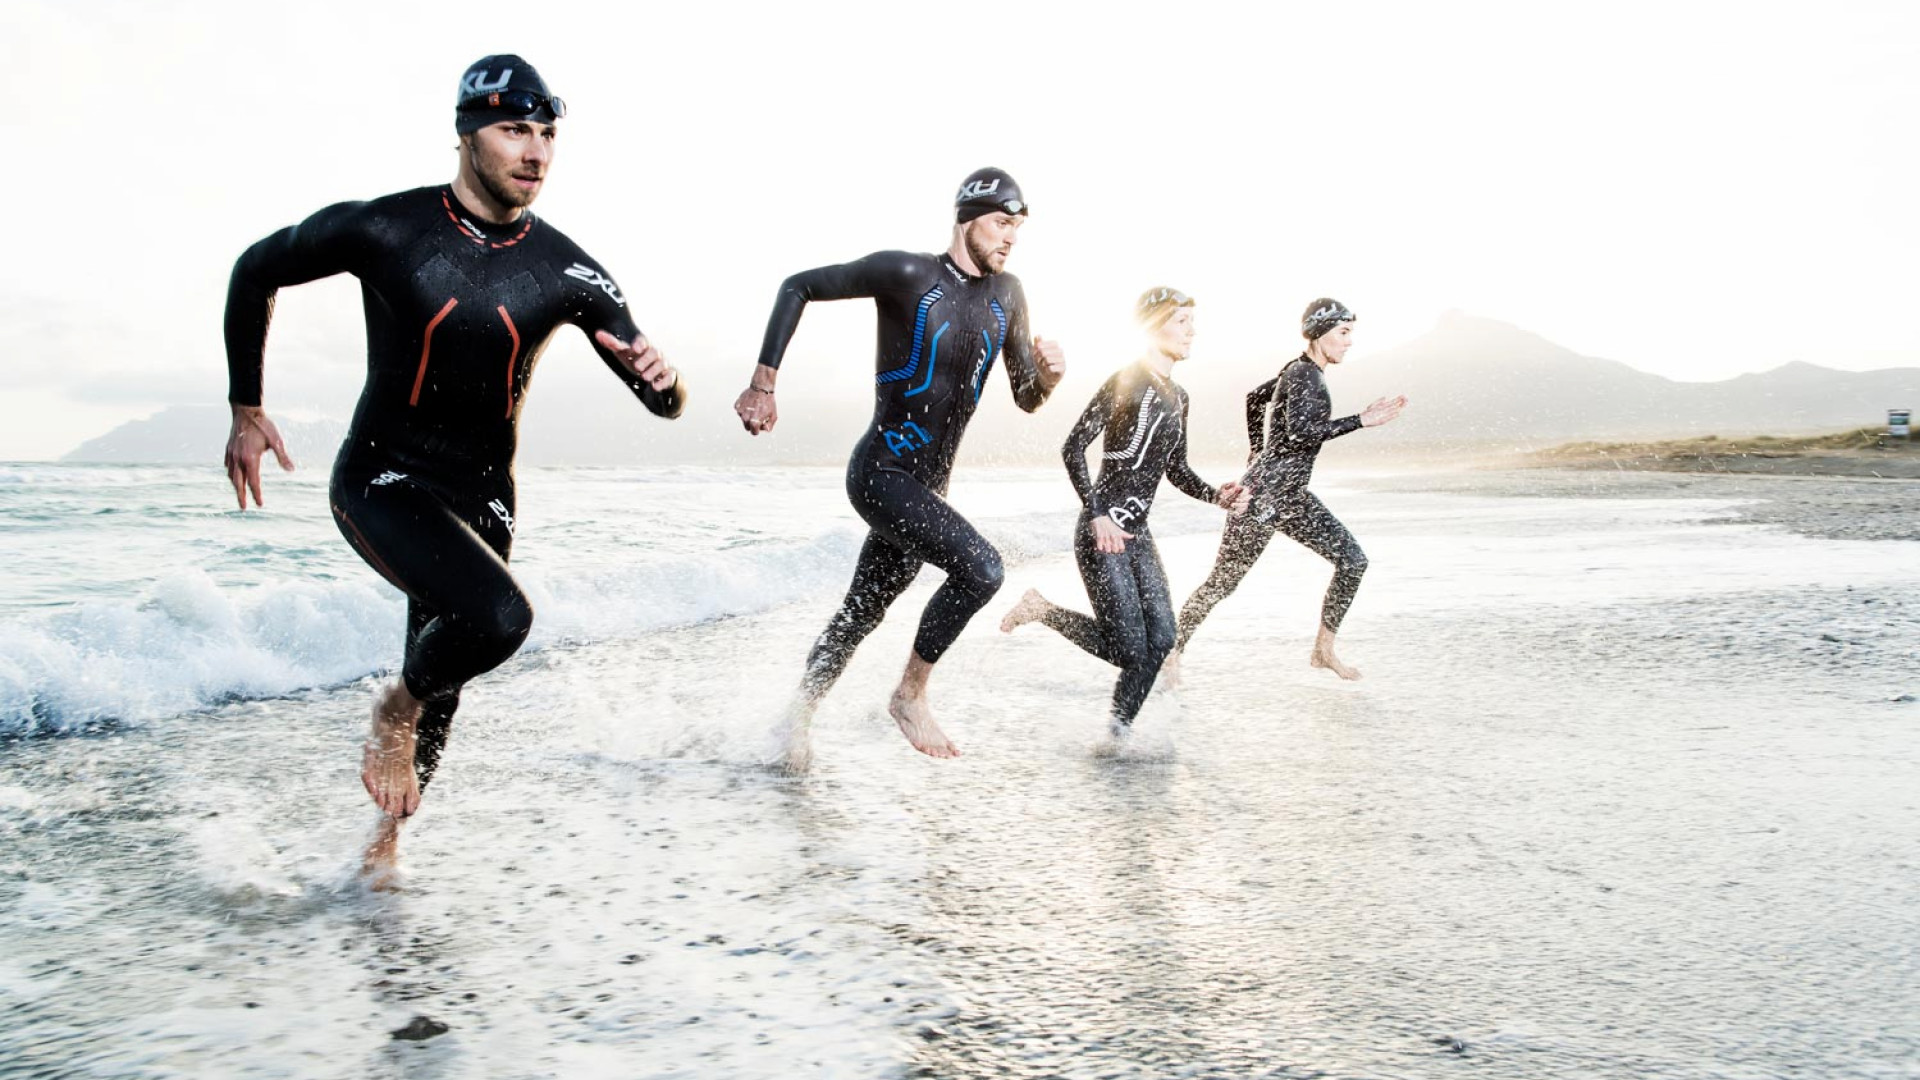 Triathletes in 2XU compression clothing